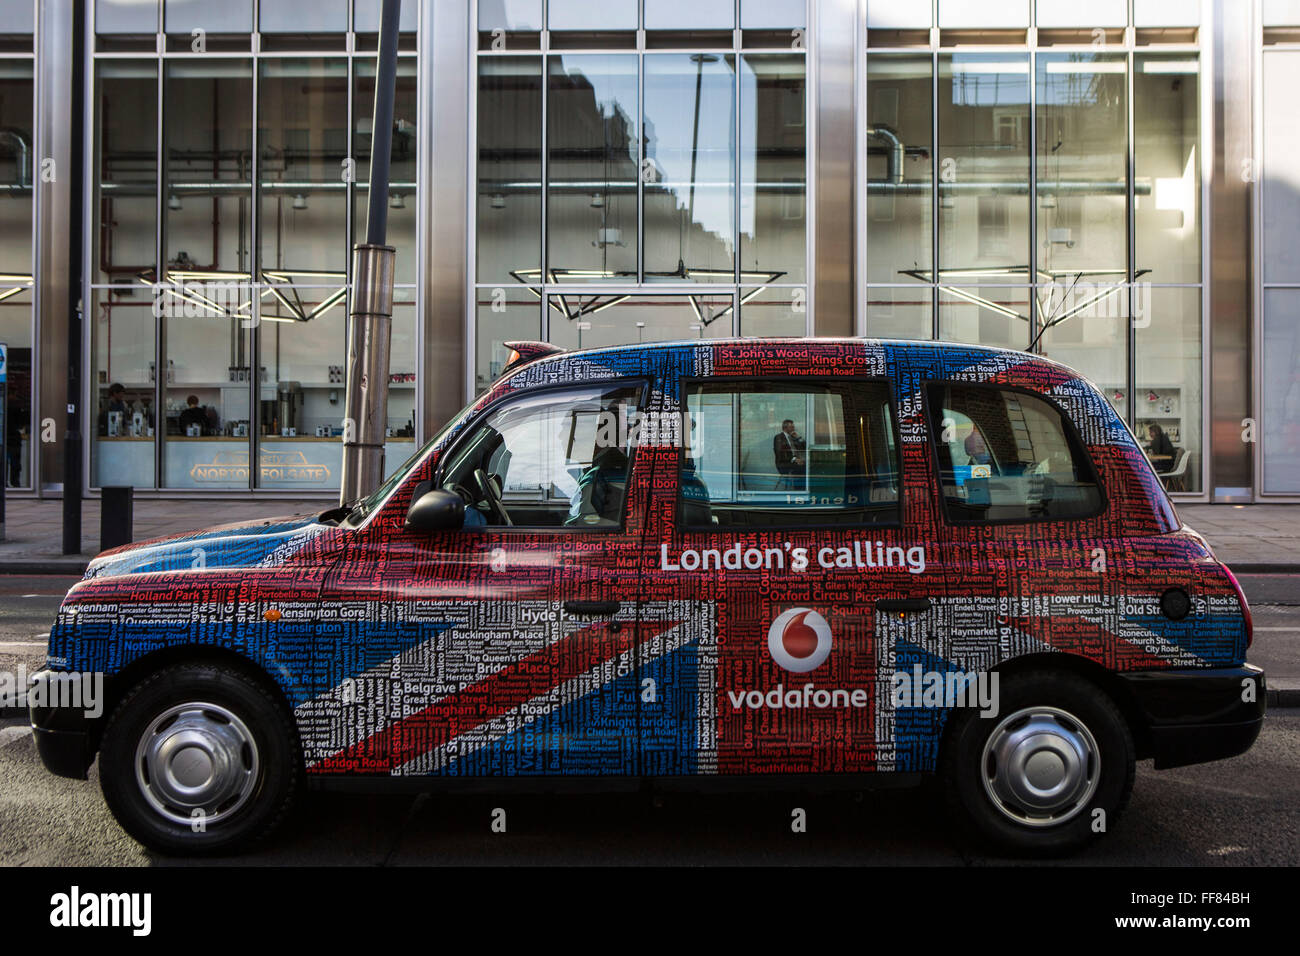 A traditional London Hackney carriage taxi cab advertising Vodafone, a multi-national mobile communication business. - Stock Image